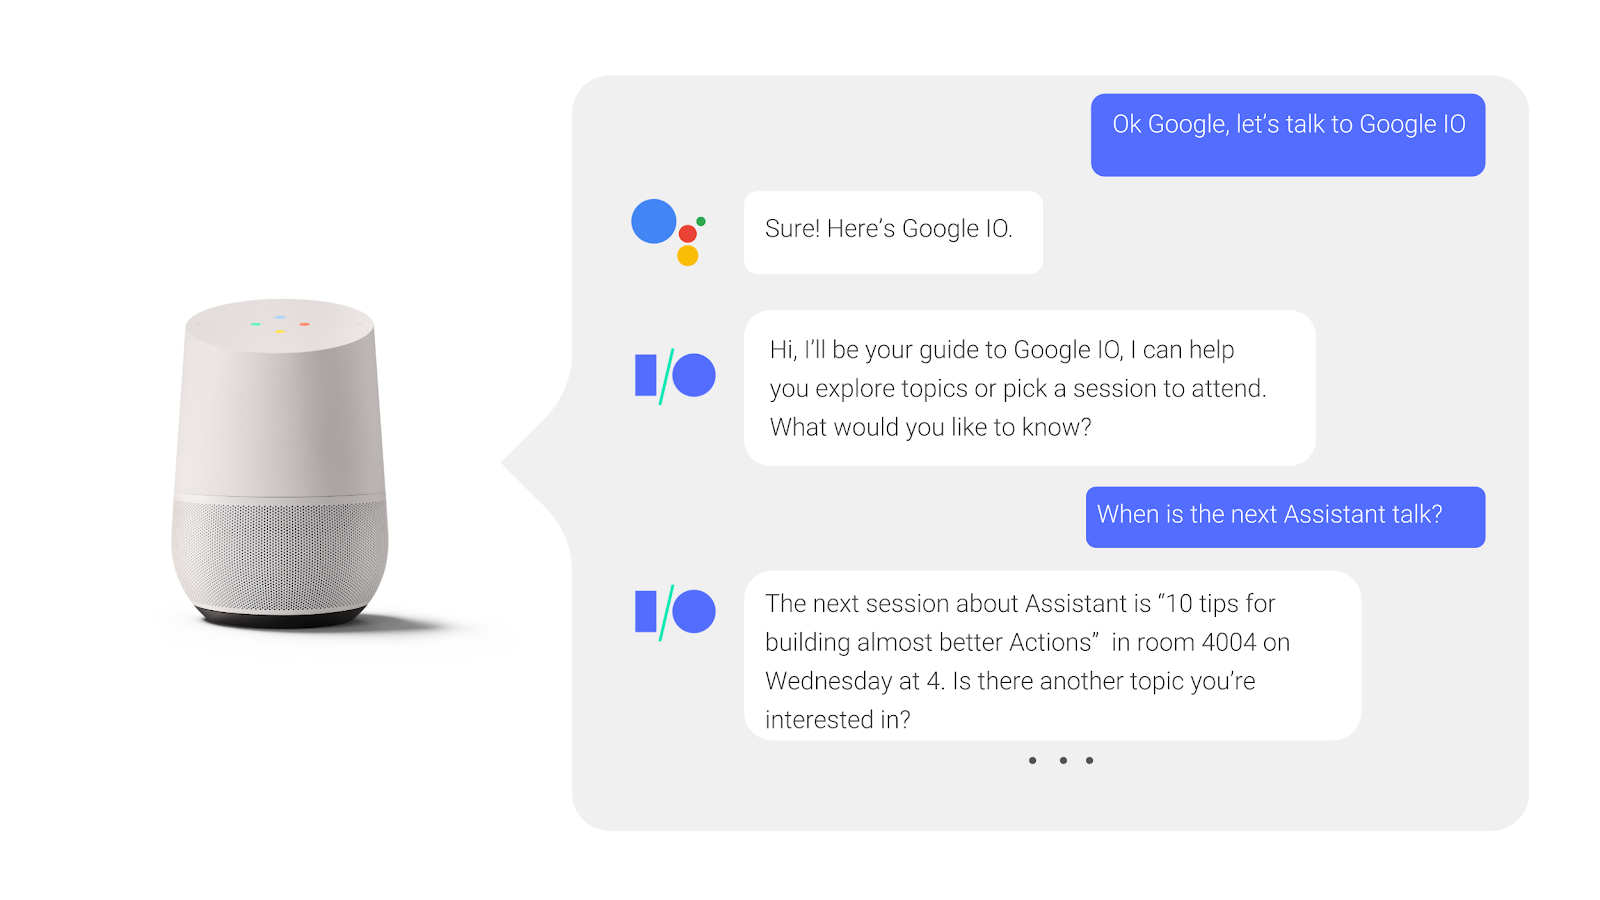 In     a back-and-forth conversation with the Google Assistant, a user asks about     and receives an answer for when a conference session is happening.